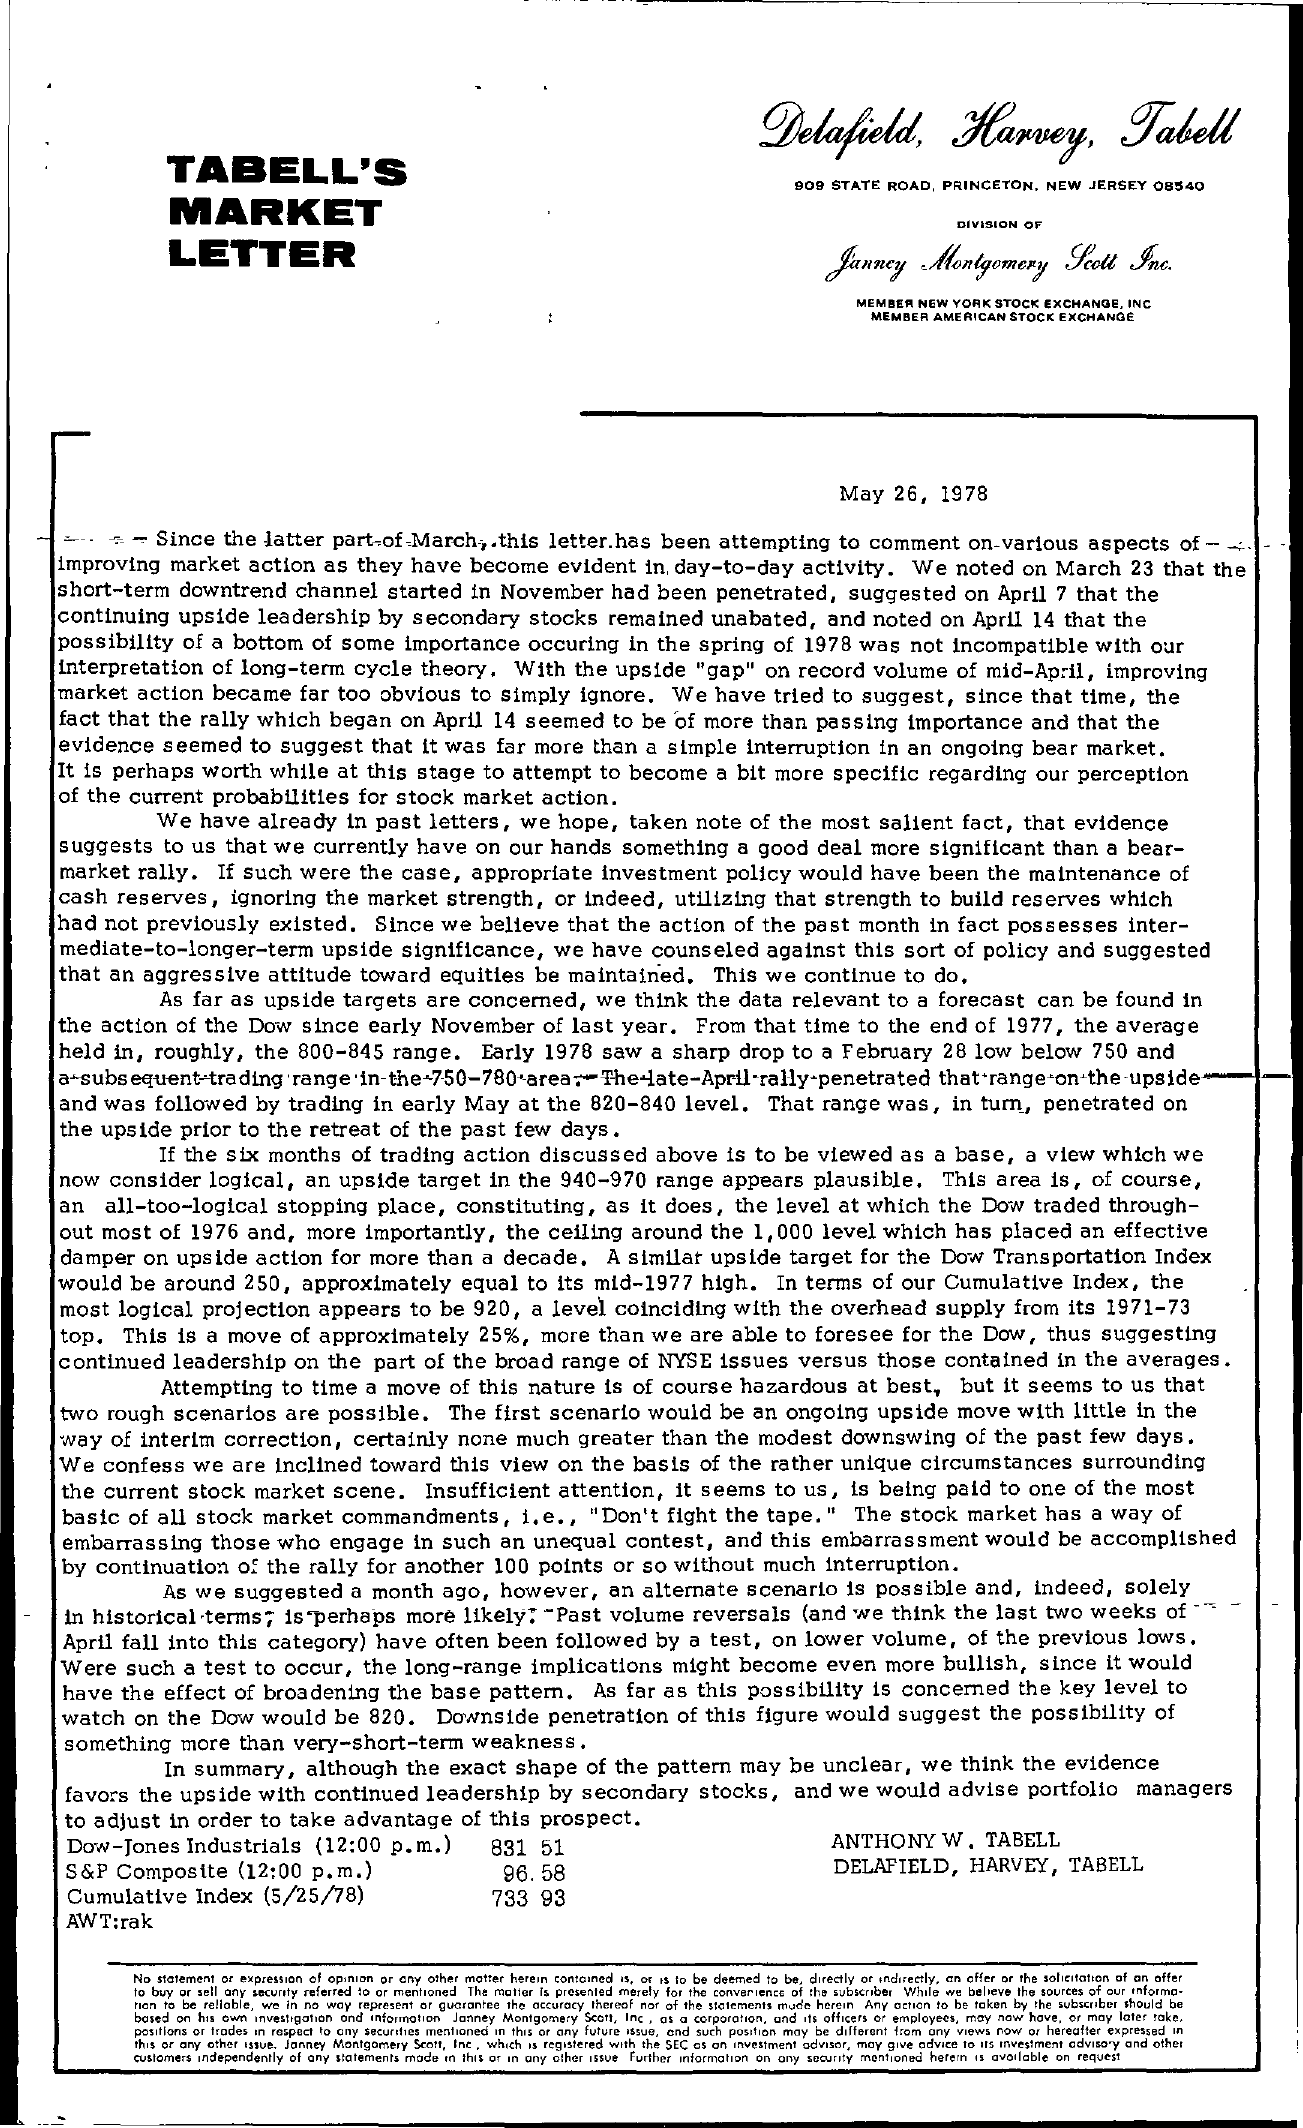 Tabell's Market Letter - May 26, 1978